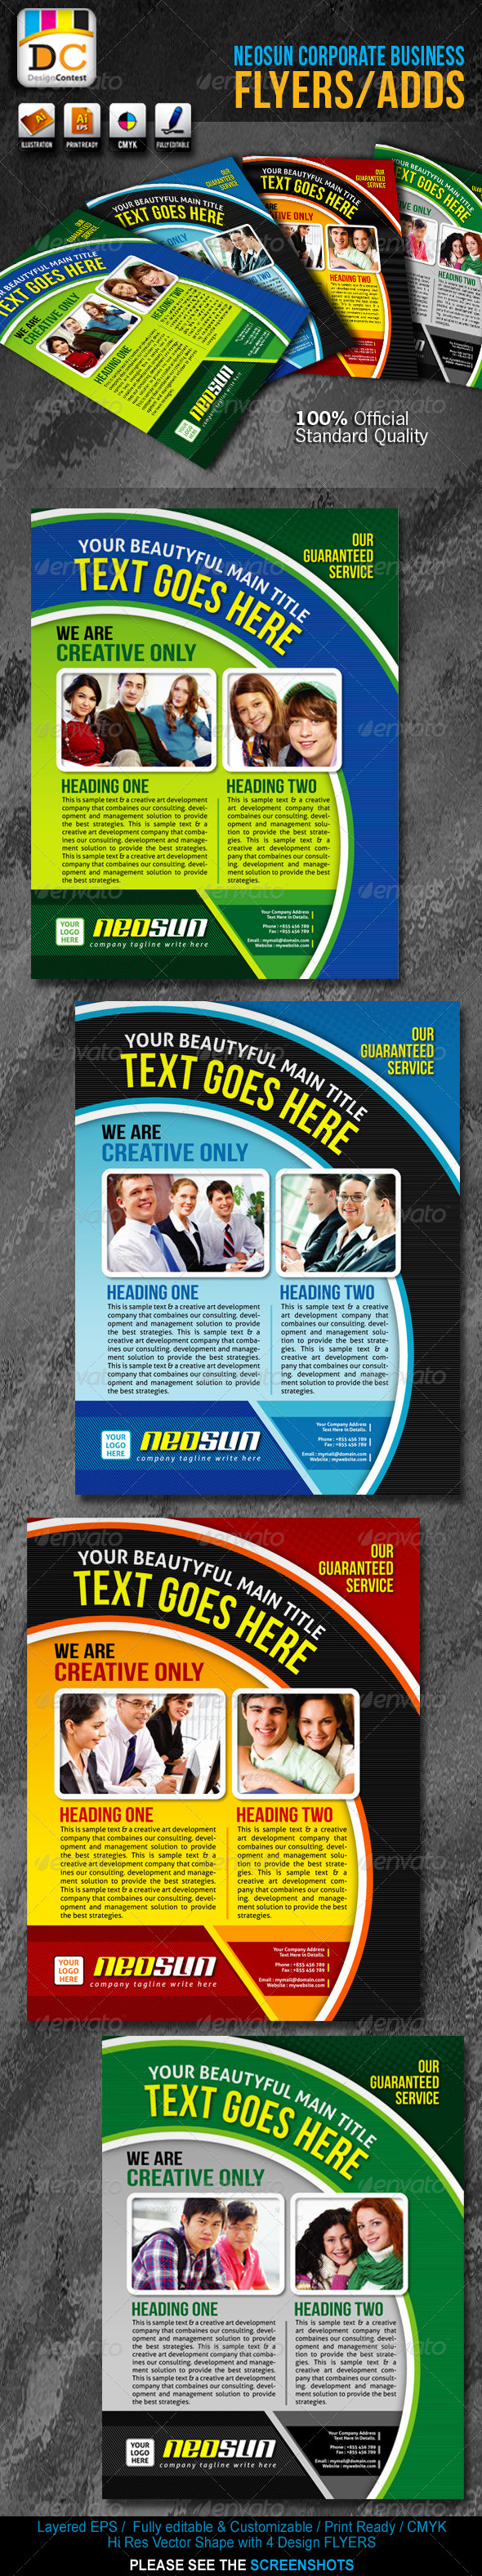 Neo Sun Corporate Business Flyers/Adds - Corporate Flyers